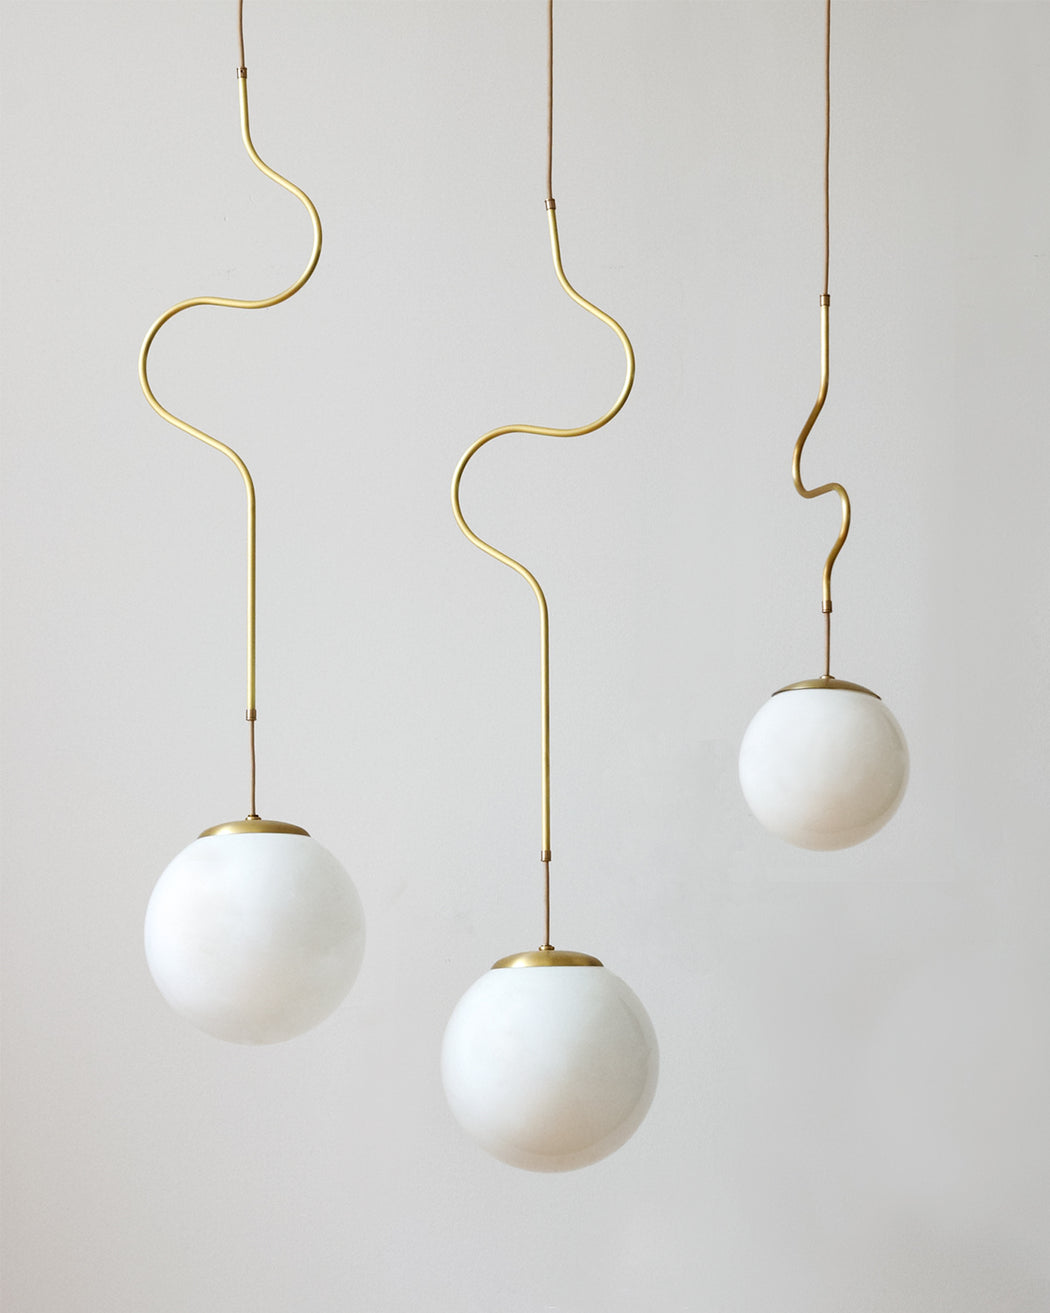 Satin brass Contour ceiling pendant lights made by Lostine in Philadelphia, Pennsylvania.  Satin brass modern lighting design with white glass globe.  Hardwired light fixture.  Simple interior design, made in the USA.